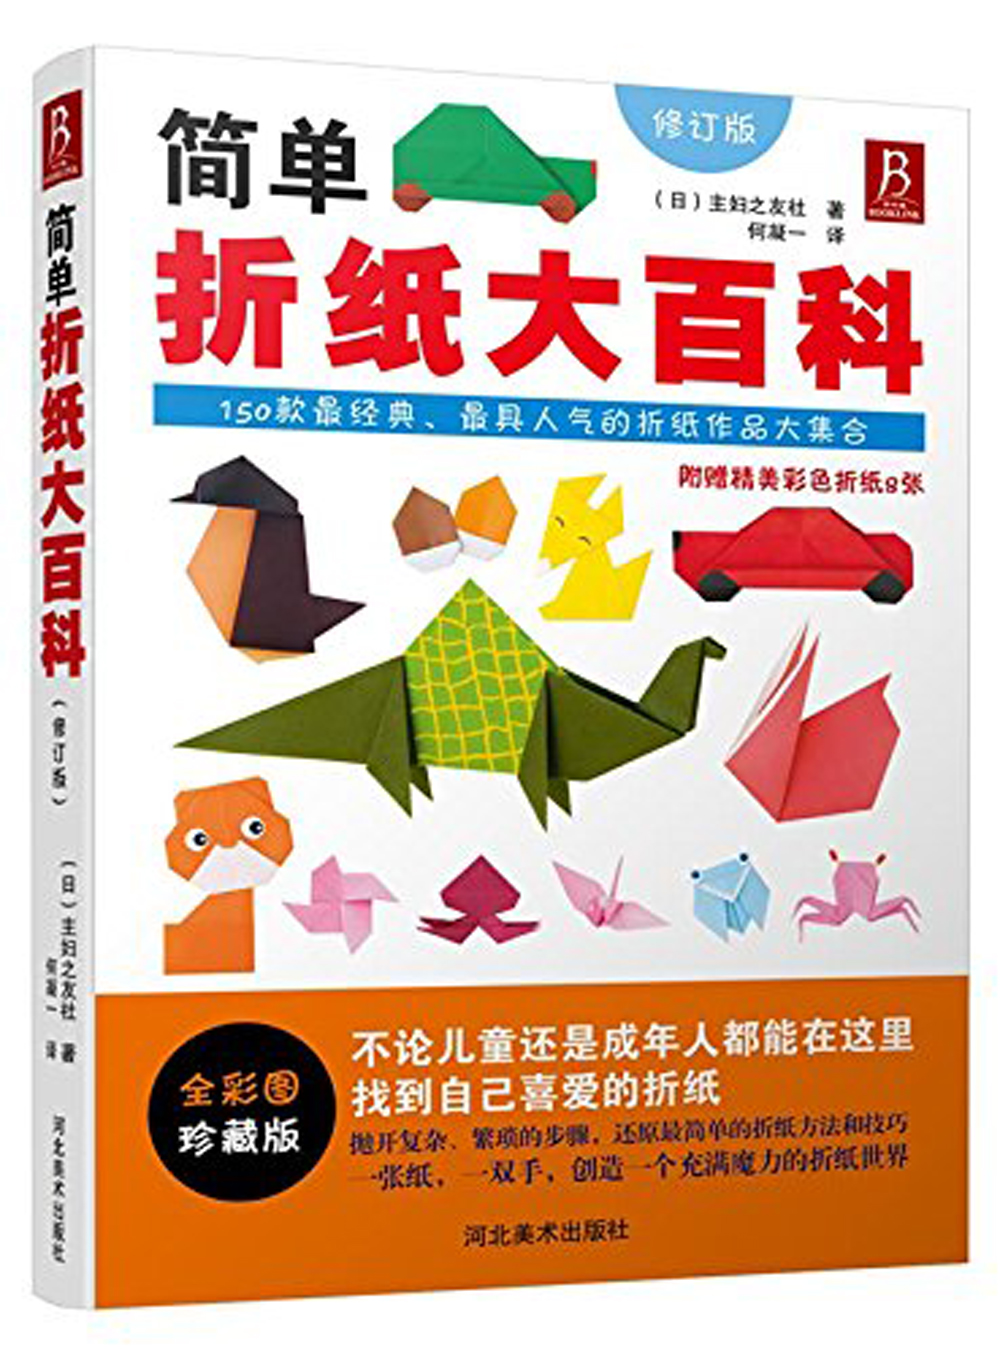 Simple Origami Encyclopedia / Chinese Handmade Carft Book